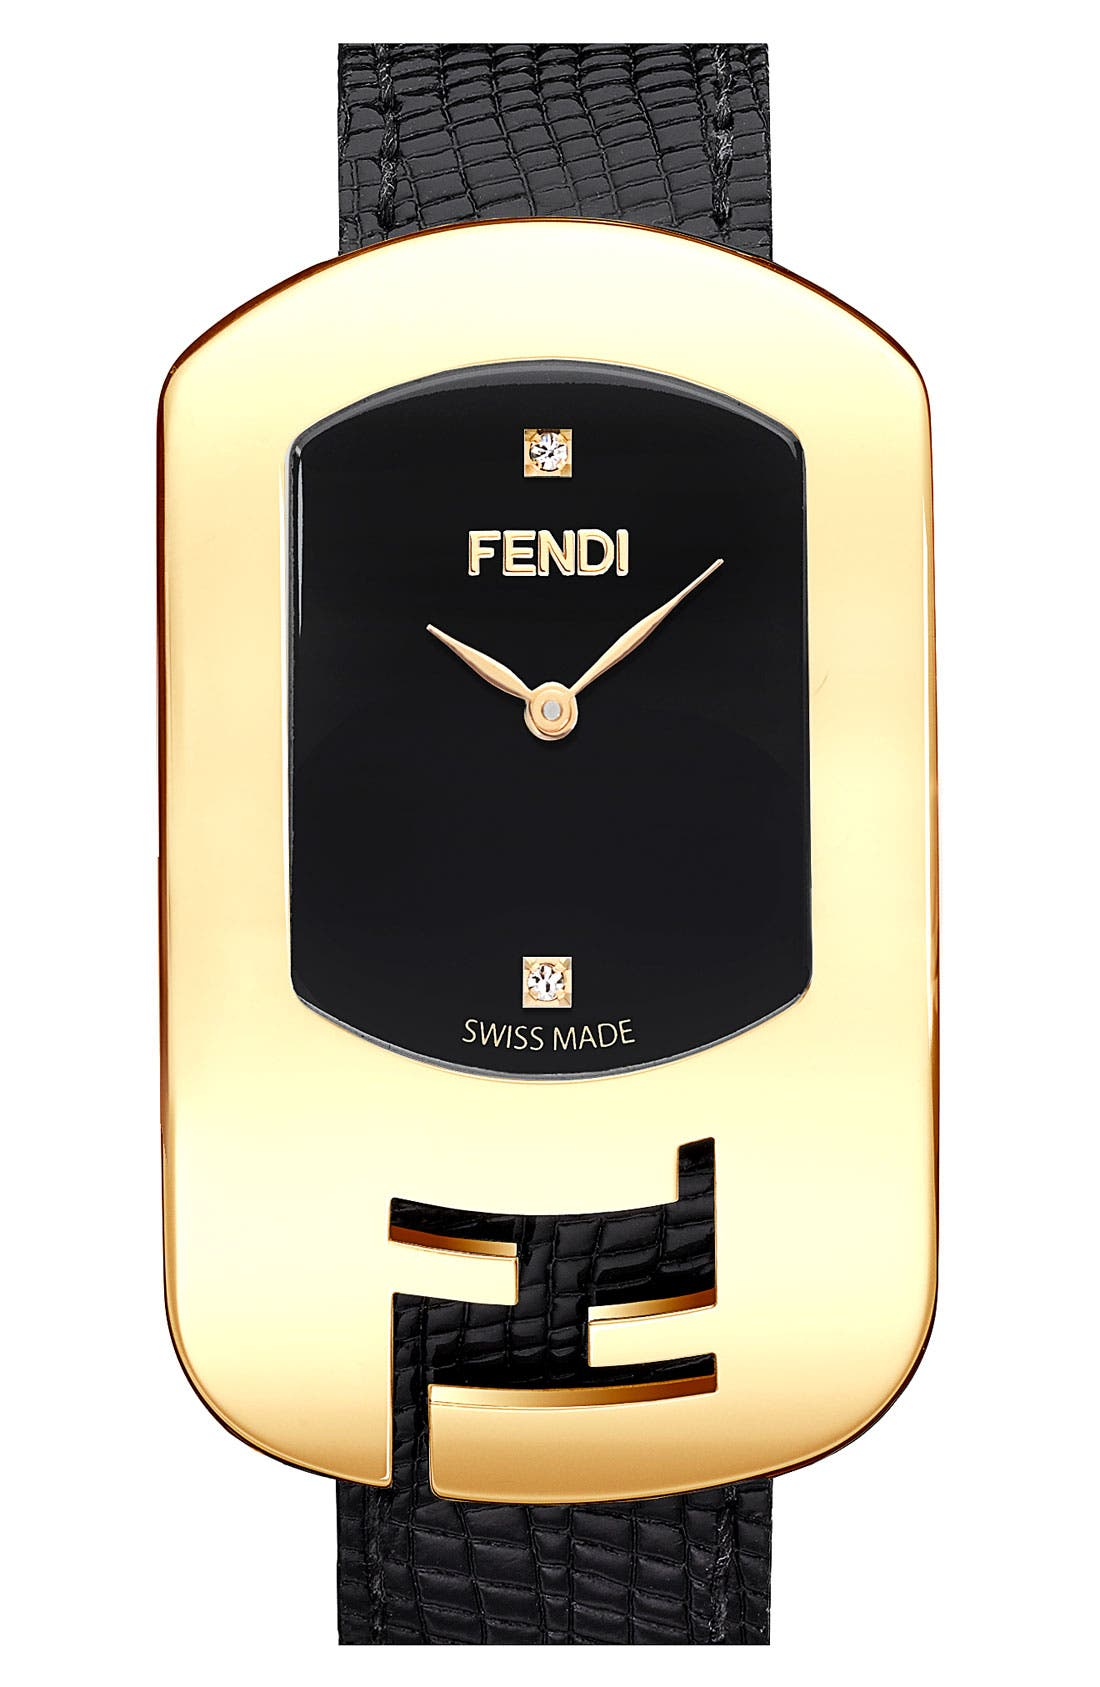 Alternate Image 1 Selected - Fendi 'Large Chameleon' Leather Strap Watch, 29mm x 49mm (Nordstrom Exclusive)